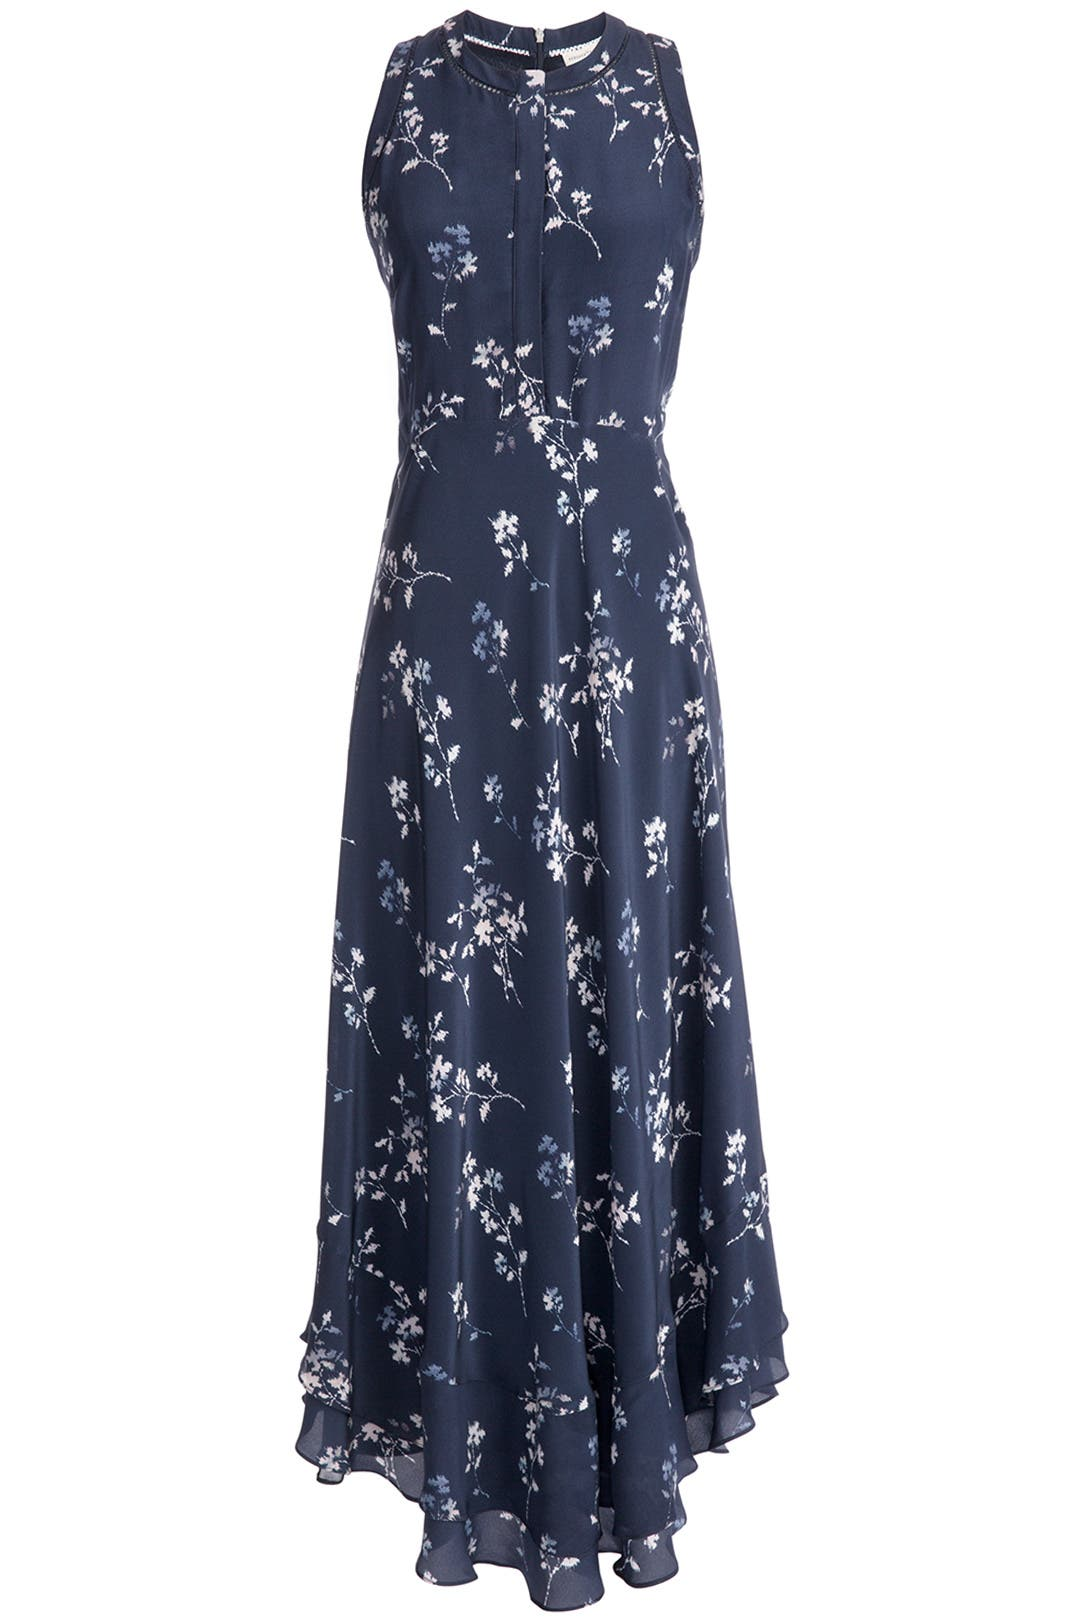 Rosemary Flame Maxi Dress by Rebecca Taylor for $148 | Rent the Runway